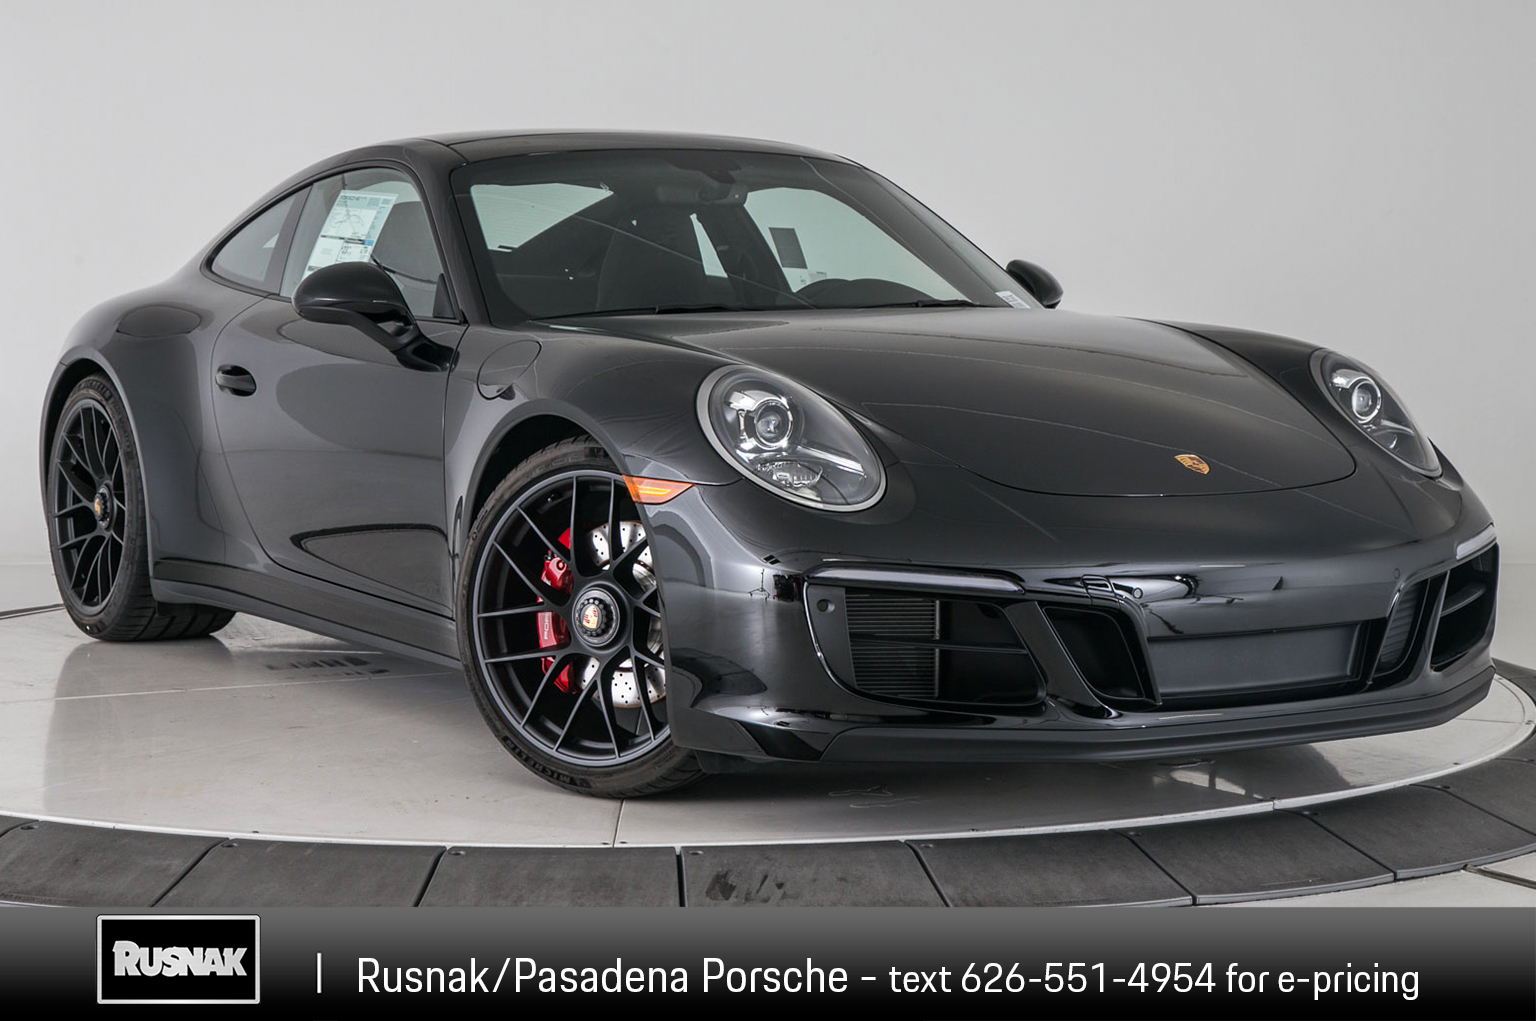 new 2019 porsche 911 carrera gts 2dr car in pasadena #391087